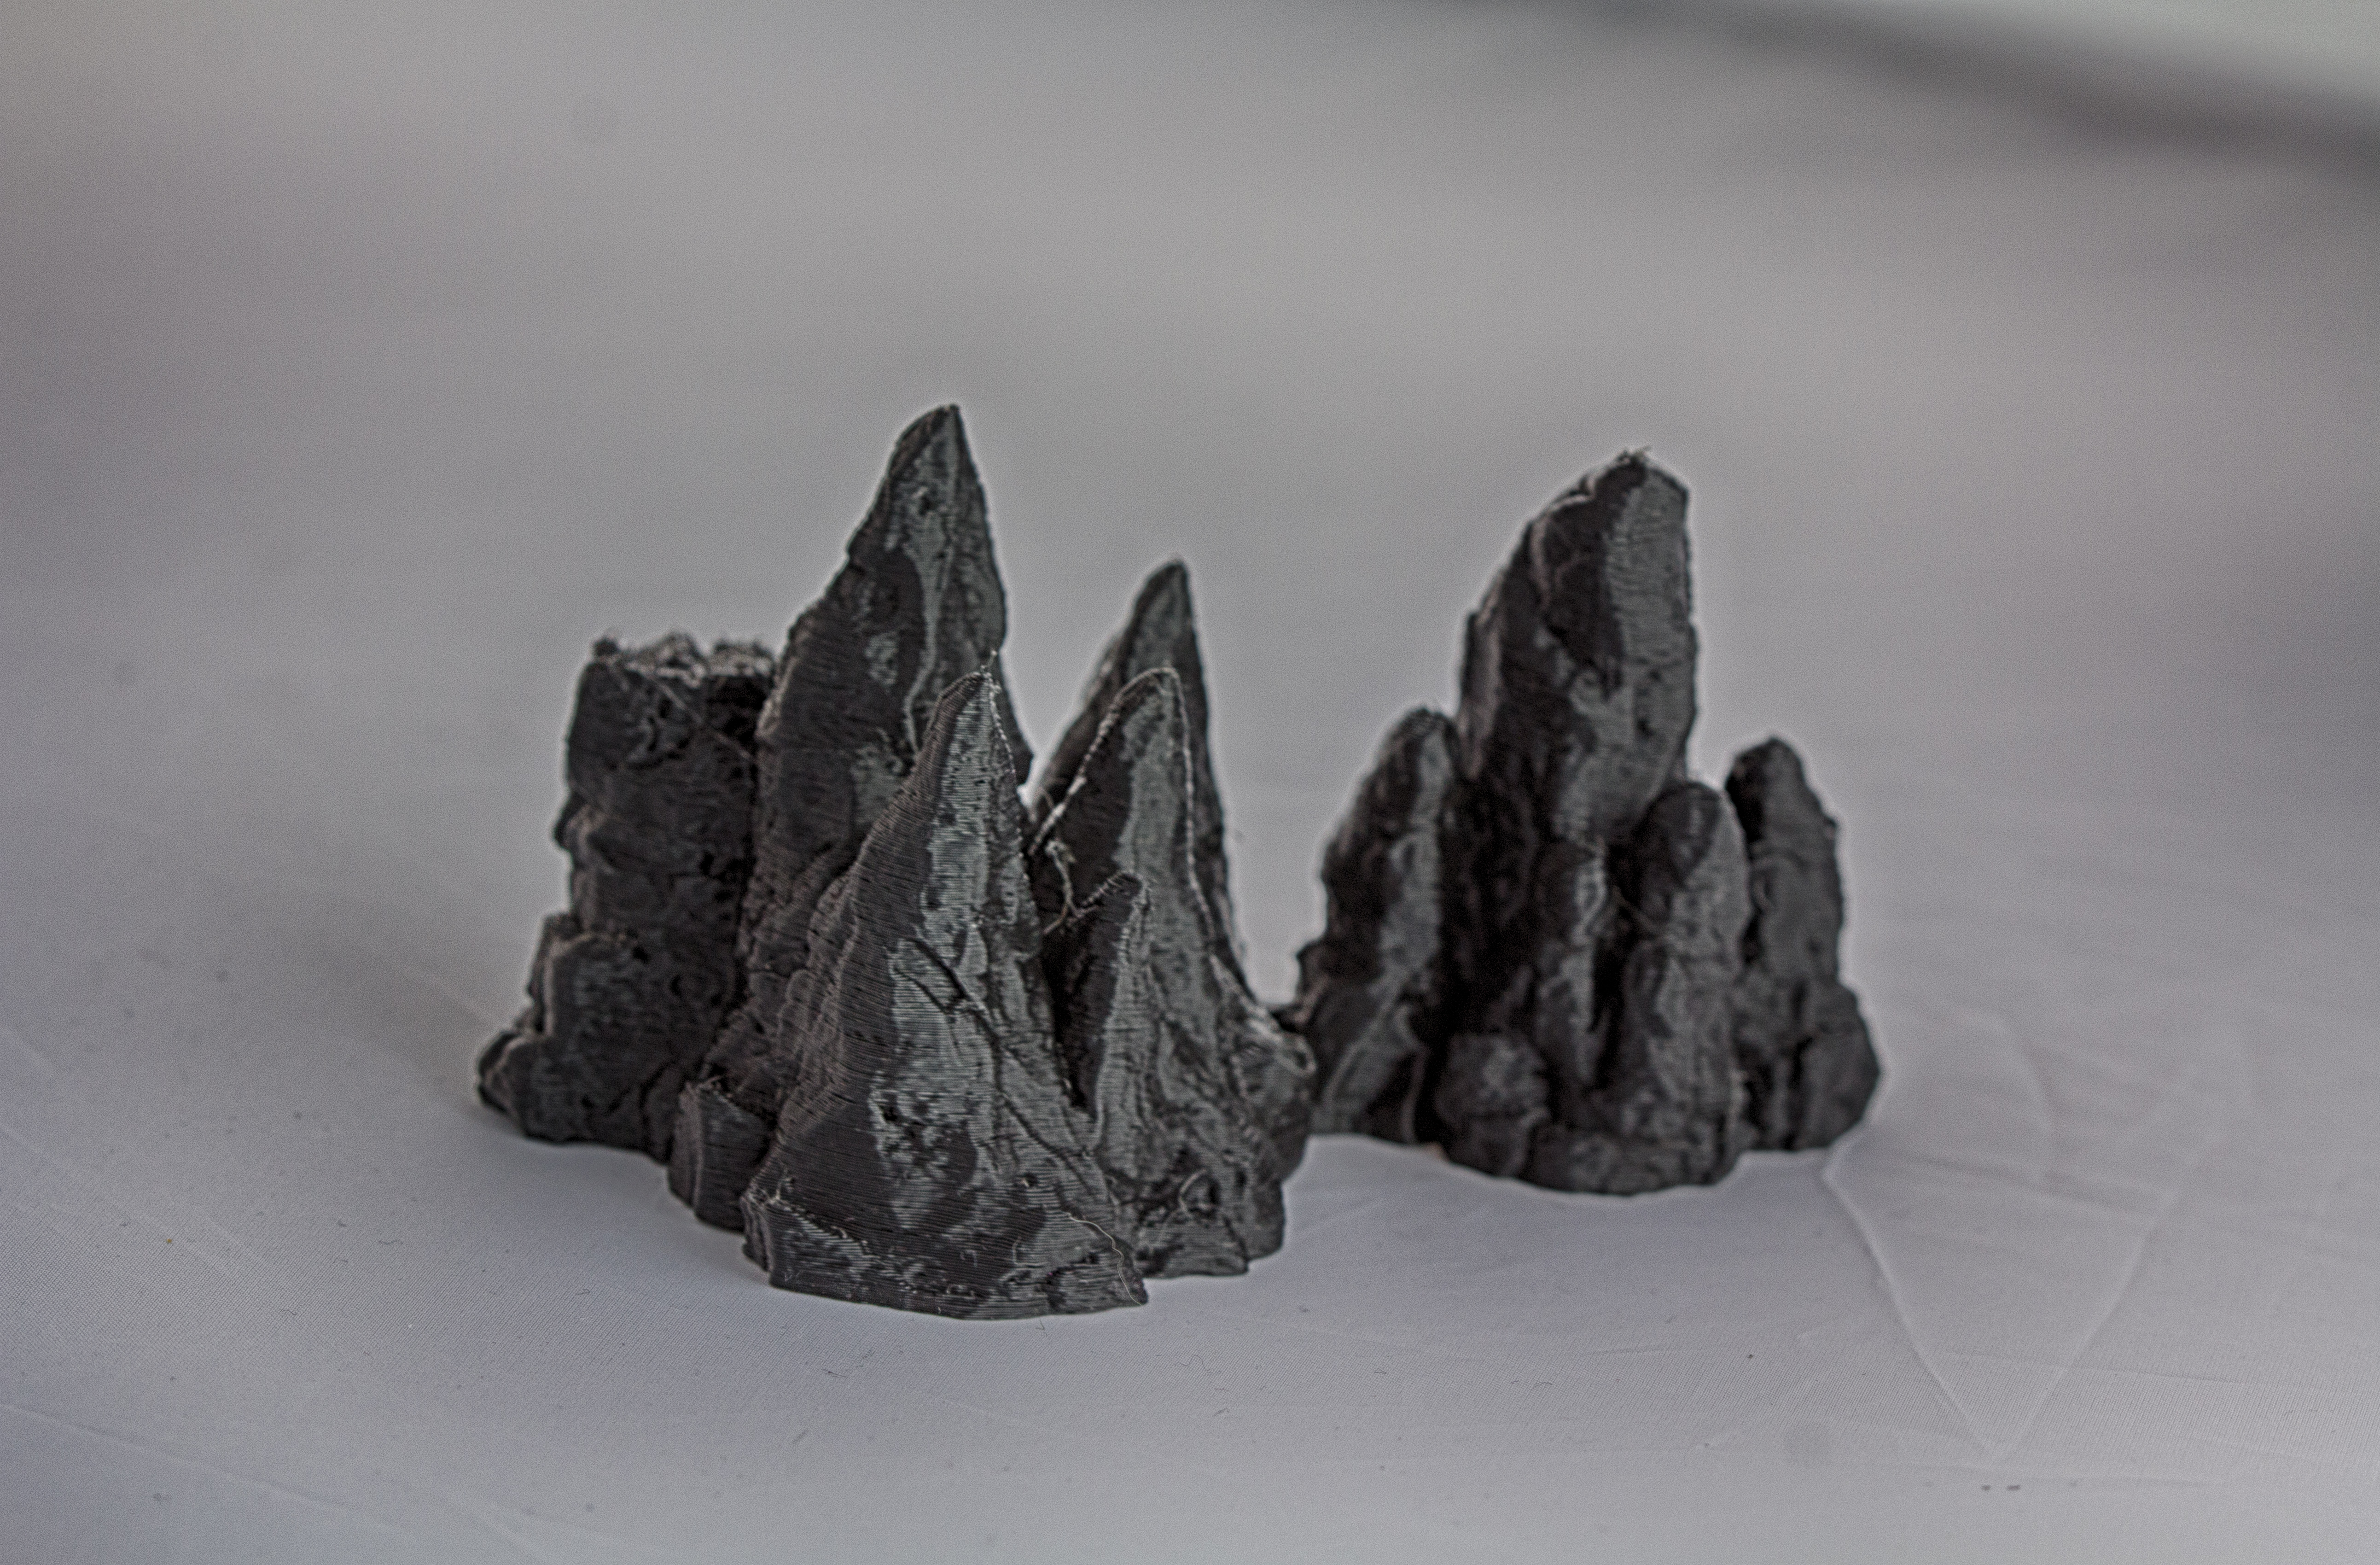 Wargame terrain - printed CR10s (9 of 10)